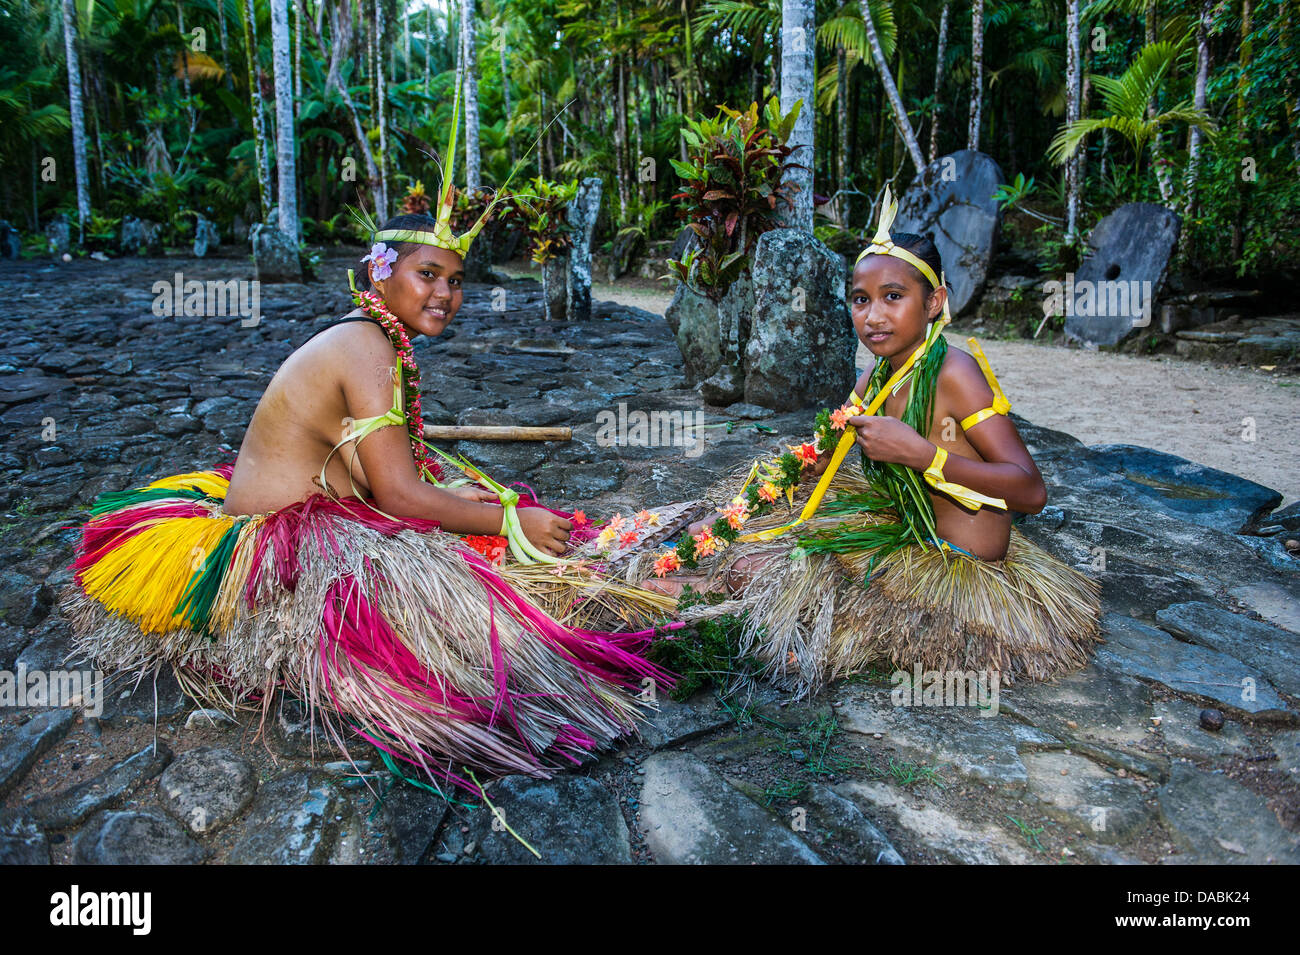 Local islanders practising traditional art work, Island of Yap, Federated States of Micronesia, Caroline Islands, - Stock Image